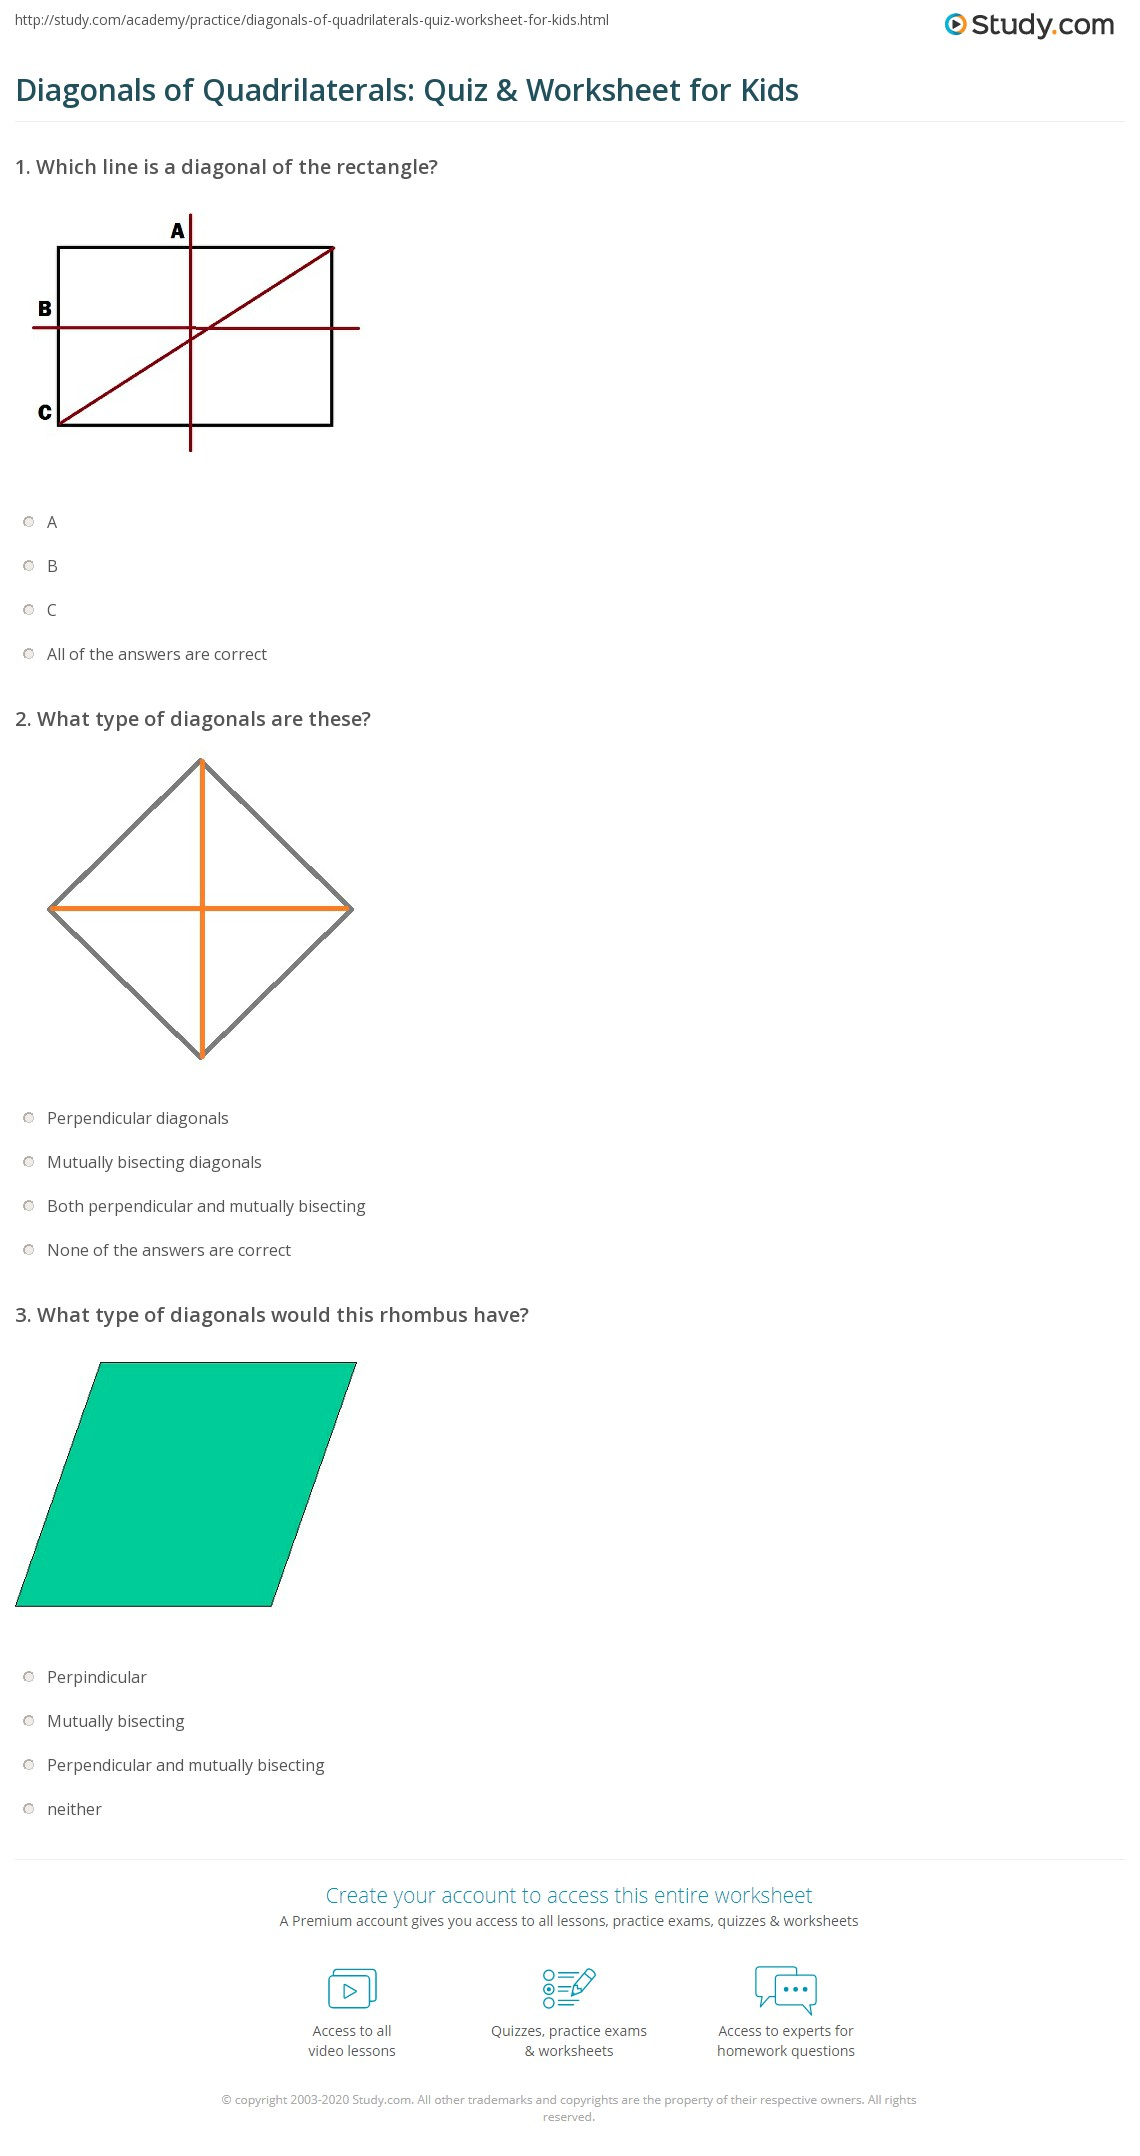 worksheet Types Of Quadrilaterals Worksheet diagonals of quadrilaterals quiz worksheet for kids study com print lesson worksheet